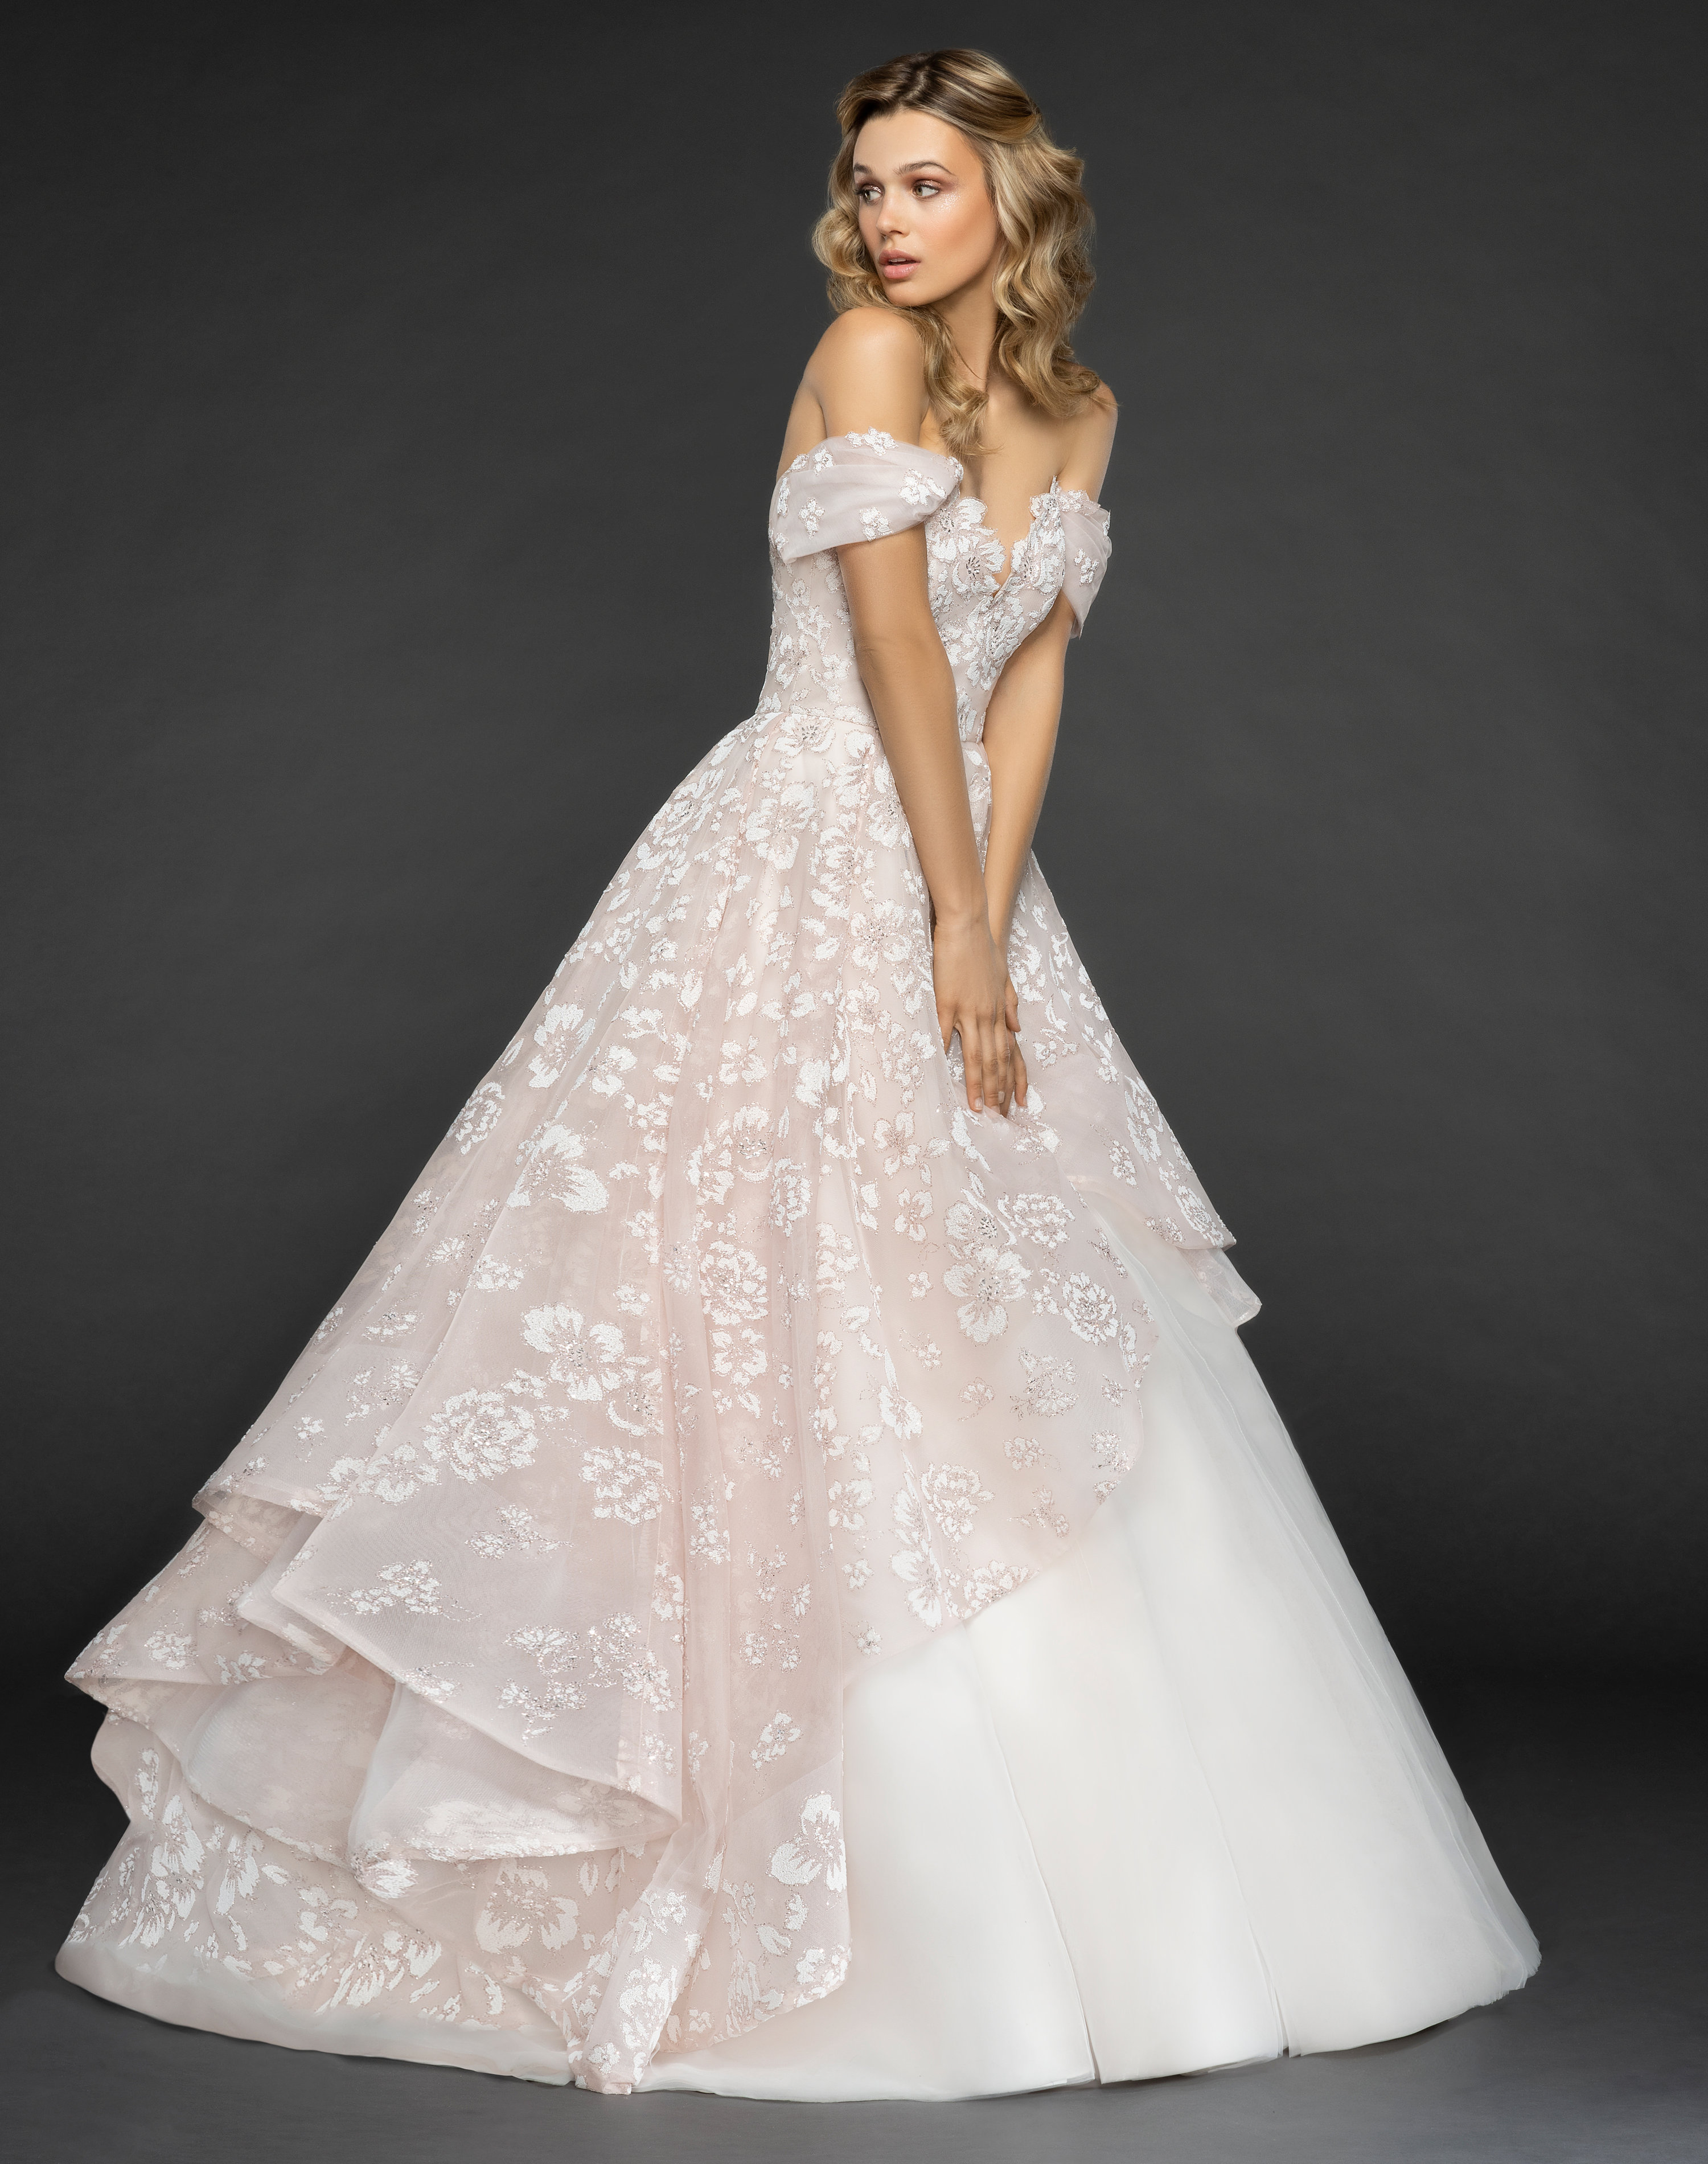 Bridal Gowns and Wedding Dresses by JLM Couture - Style 6860 Lyla